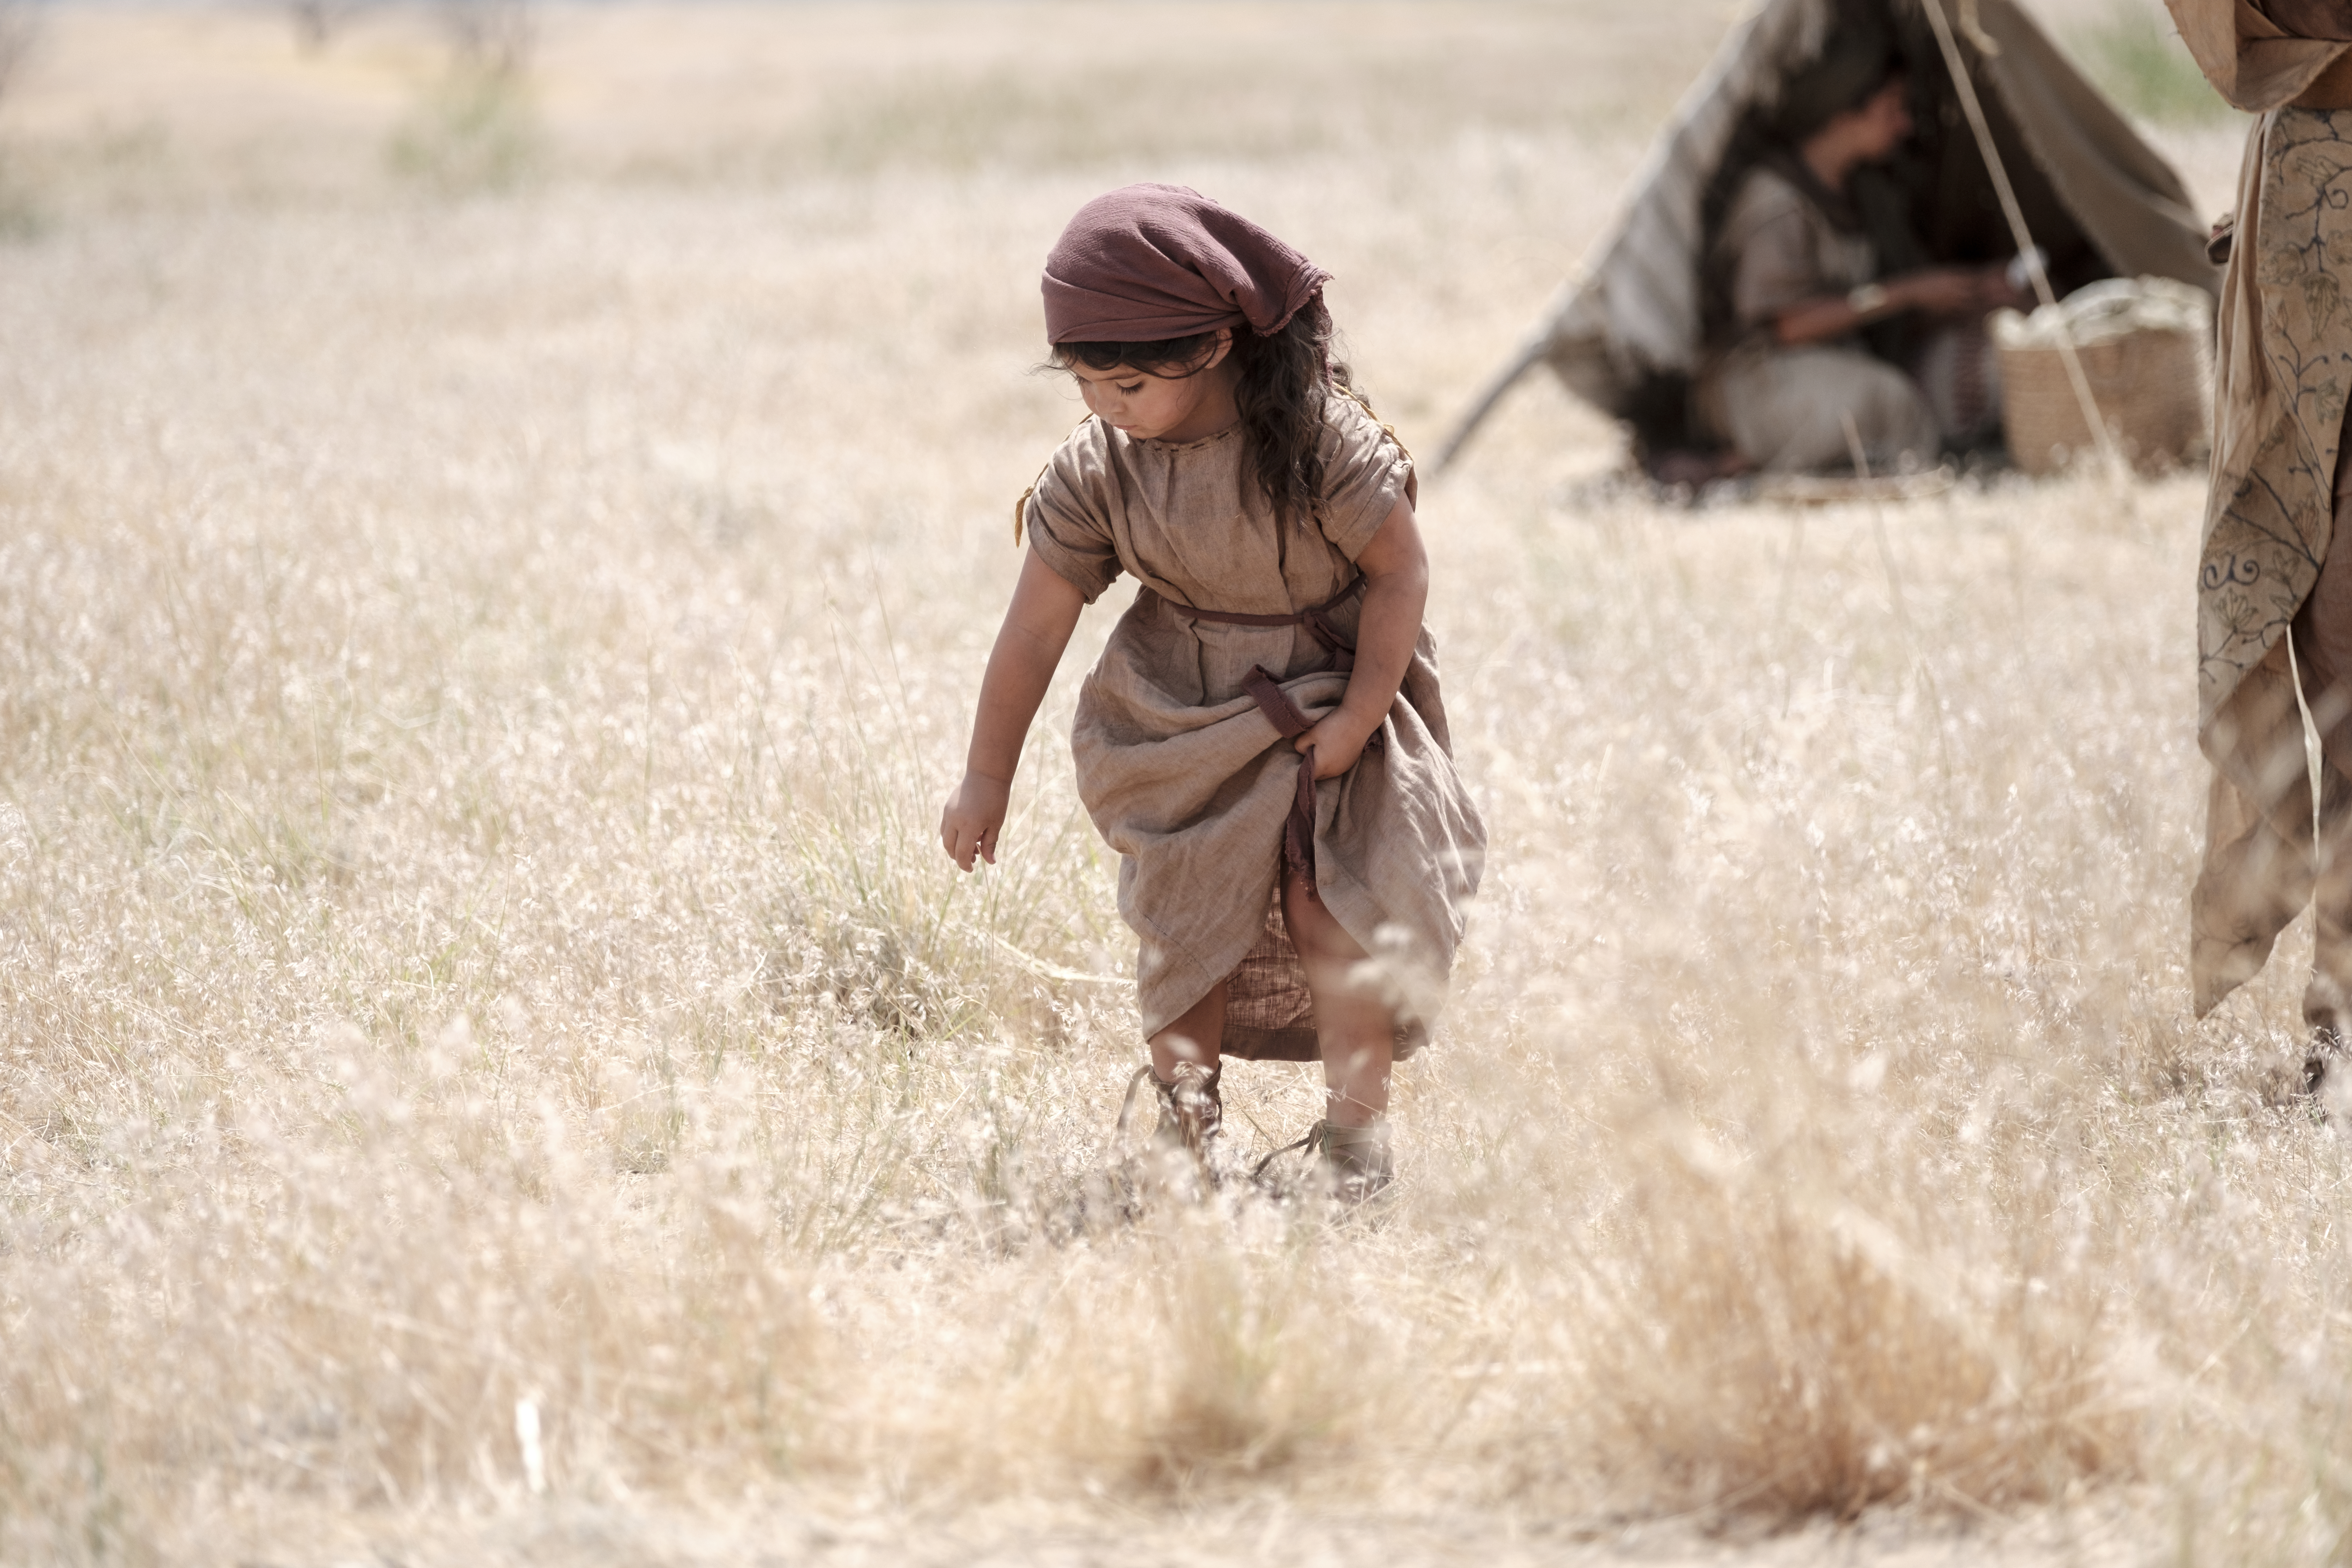 A child in Ishmael's camp walks through the wilderness.